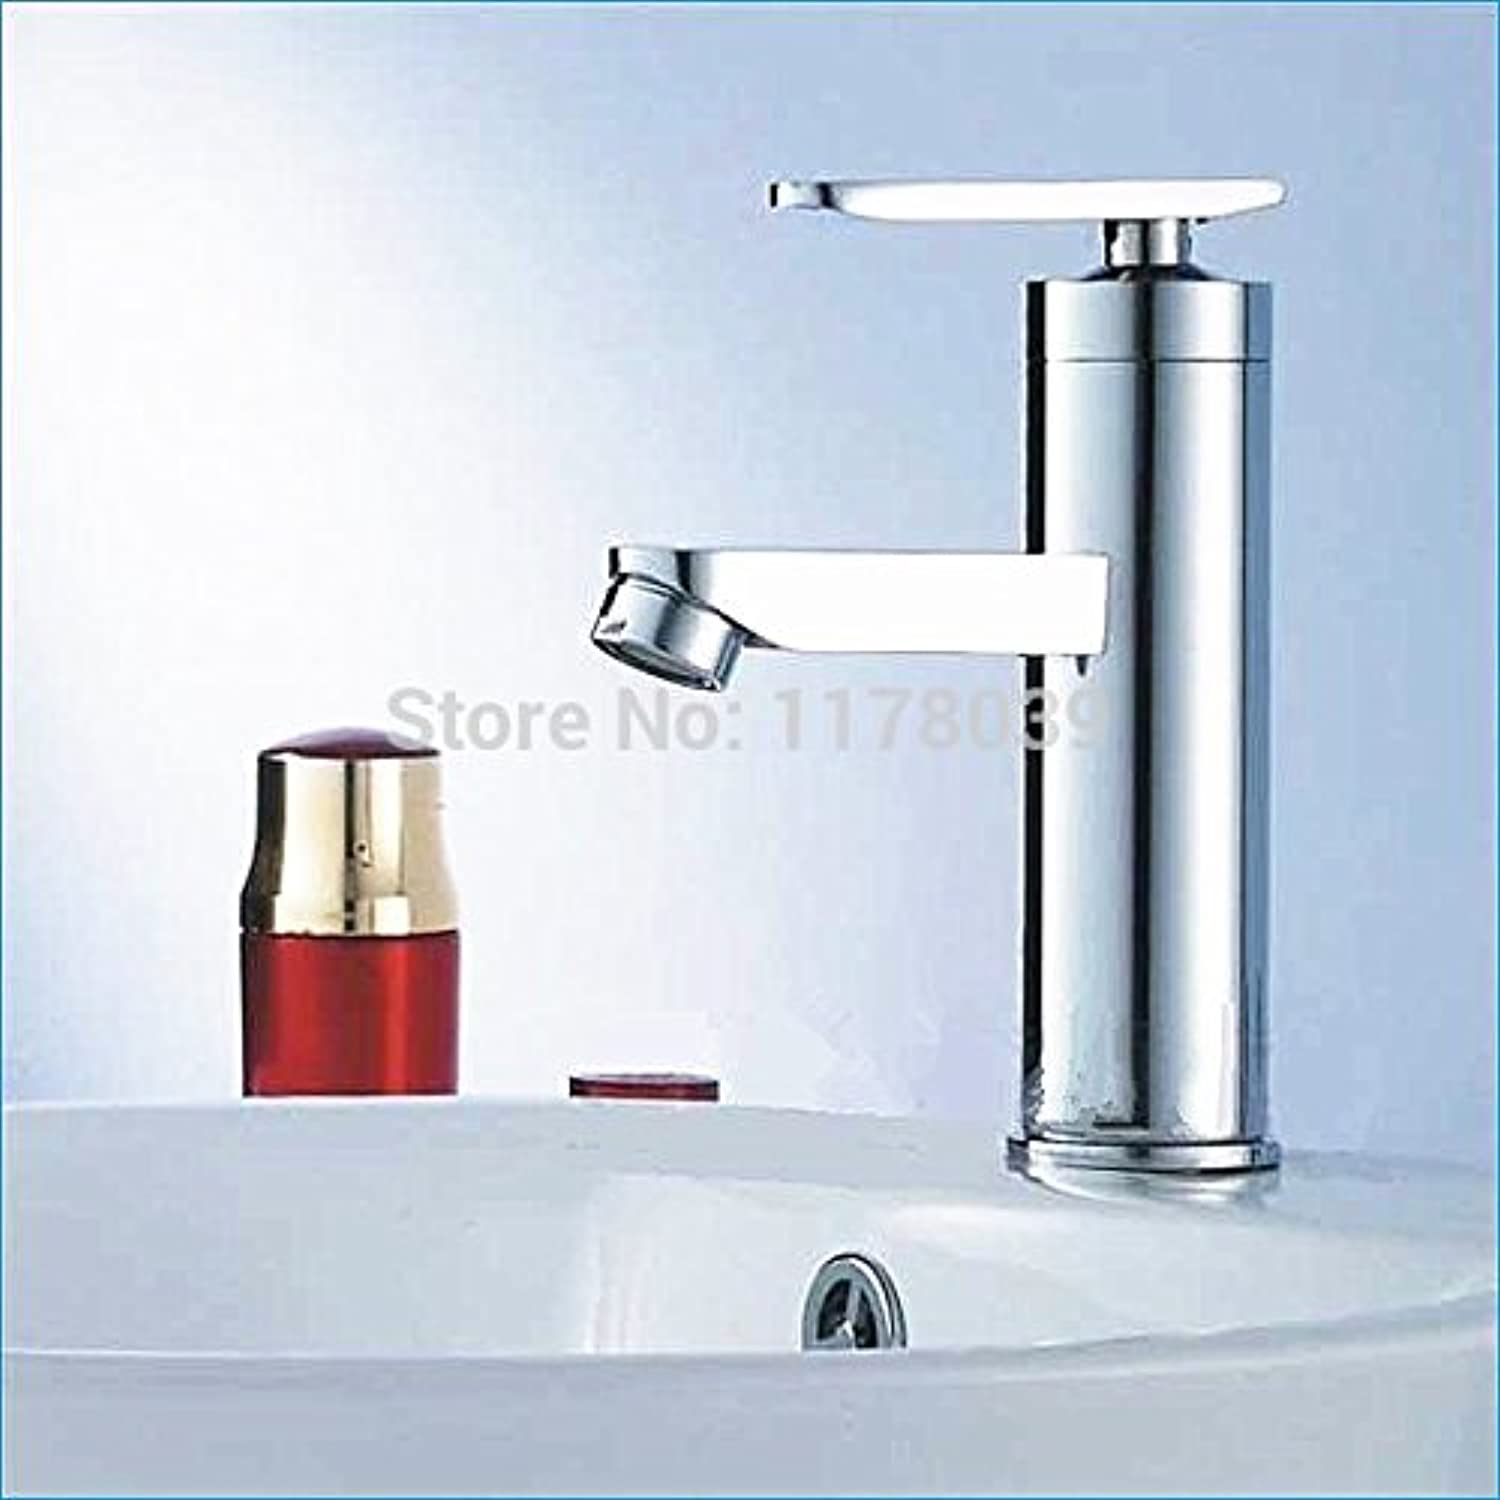 U-Enjoy Zinc Alloy Faucet Top Quality for Bathroom Fashion Little Emperors Single Hole Tap Hot and Cold Faucet (Free Shipping)